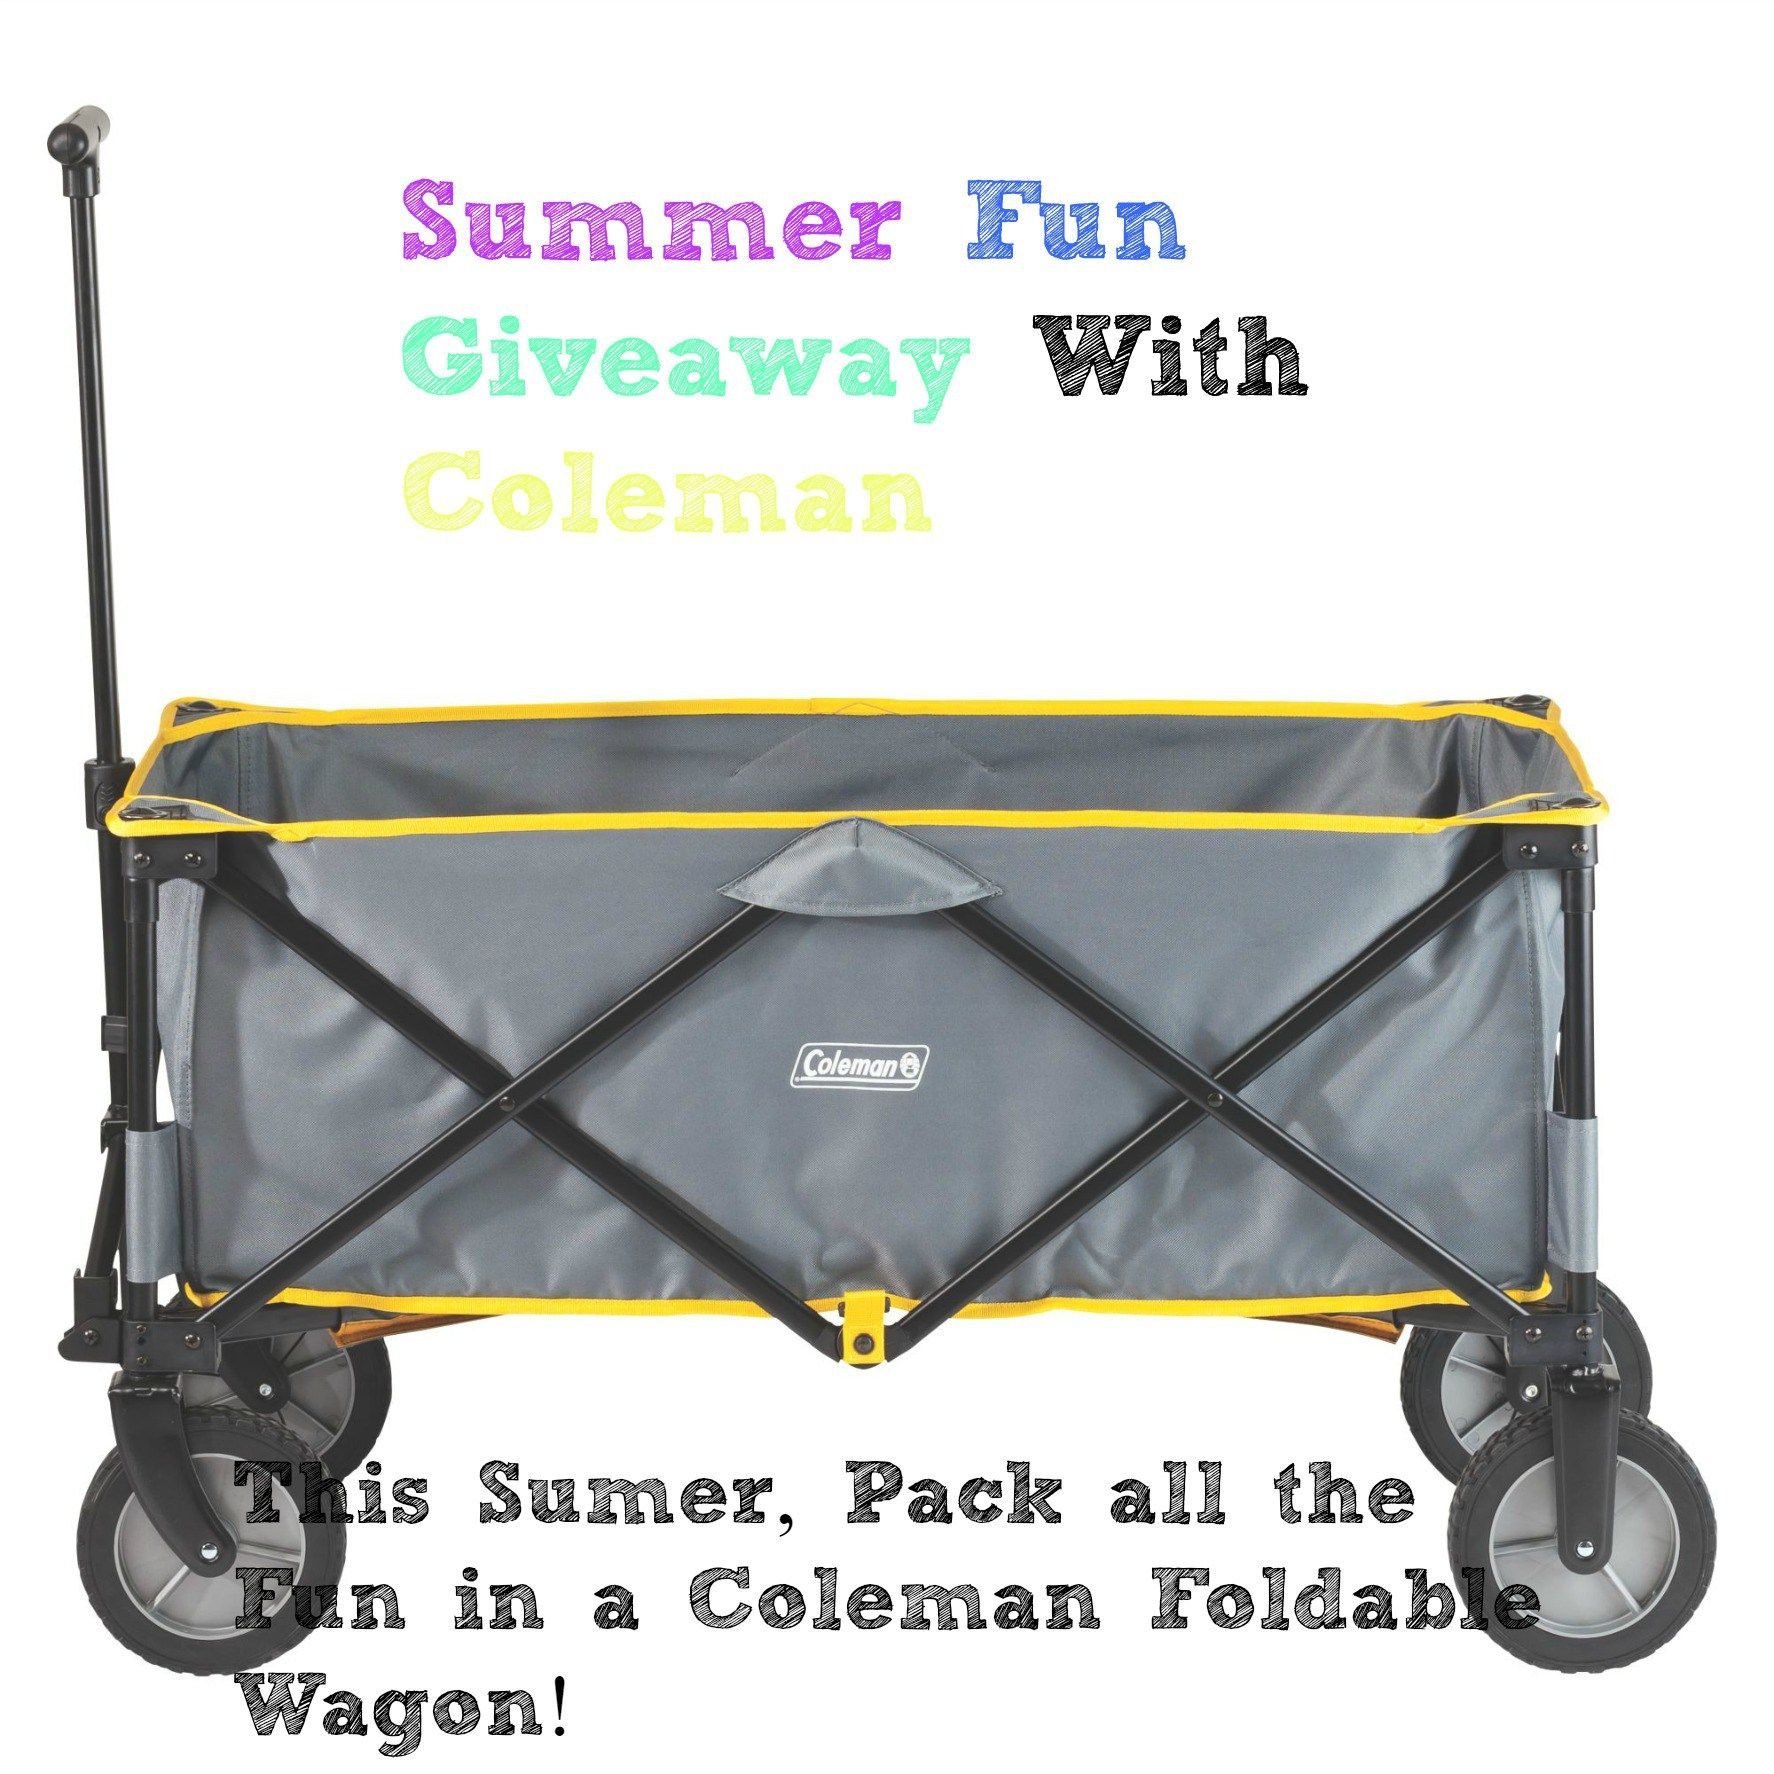 Ready+for+#Summer?+Pack+all+the+#Fun+in+a+#Coleman+#FoldableWagon!+#+Win+#Giveaway+#ad